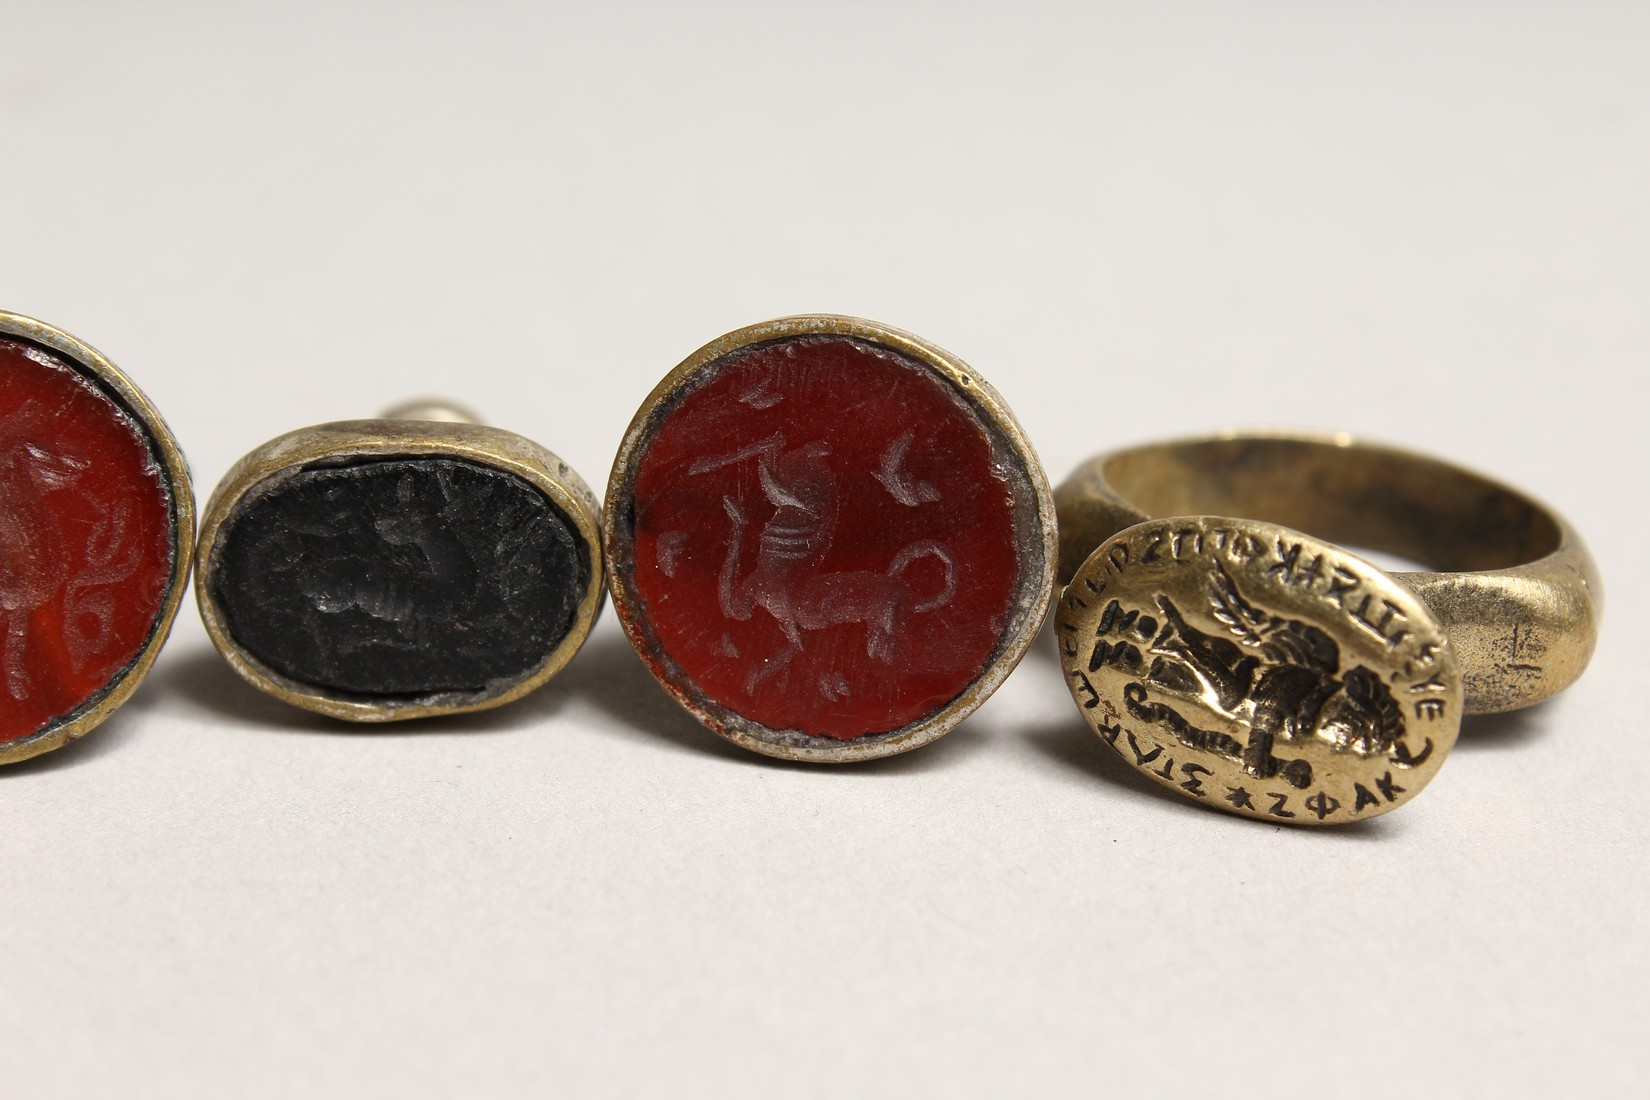 TWO SMALL RINGS AND THREE SEALS (5). - Image 5 of 5